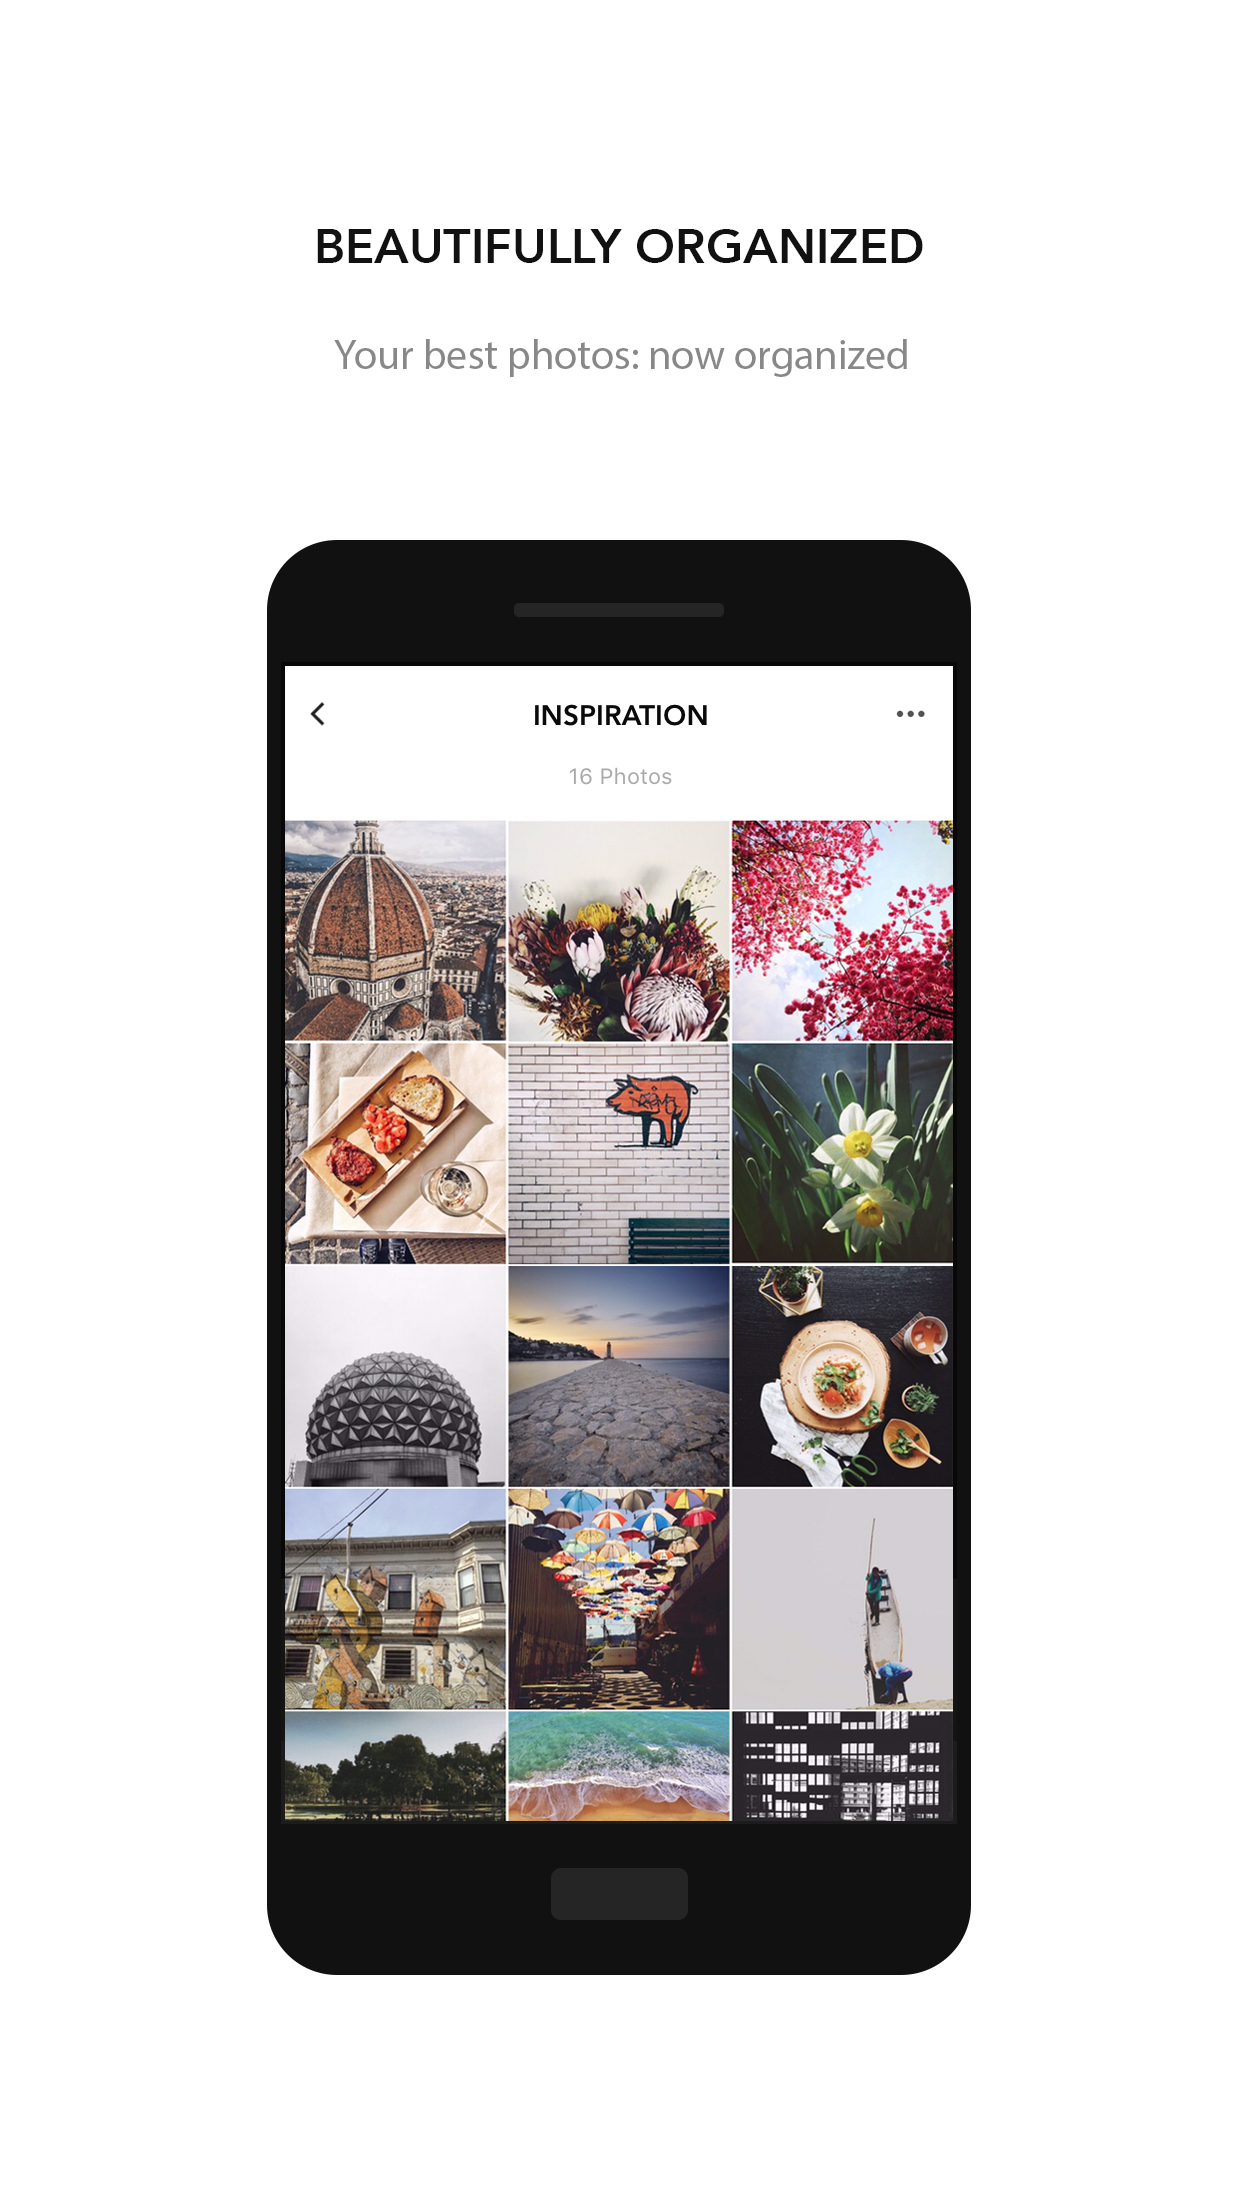 Slidebox brings its Tinder-like photo management app to